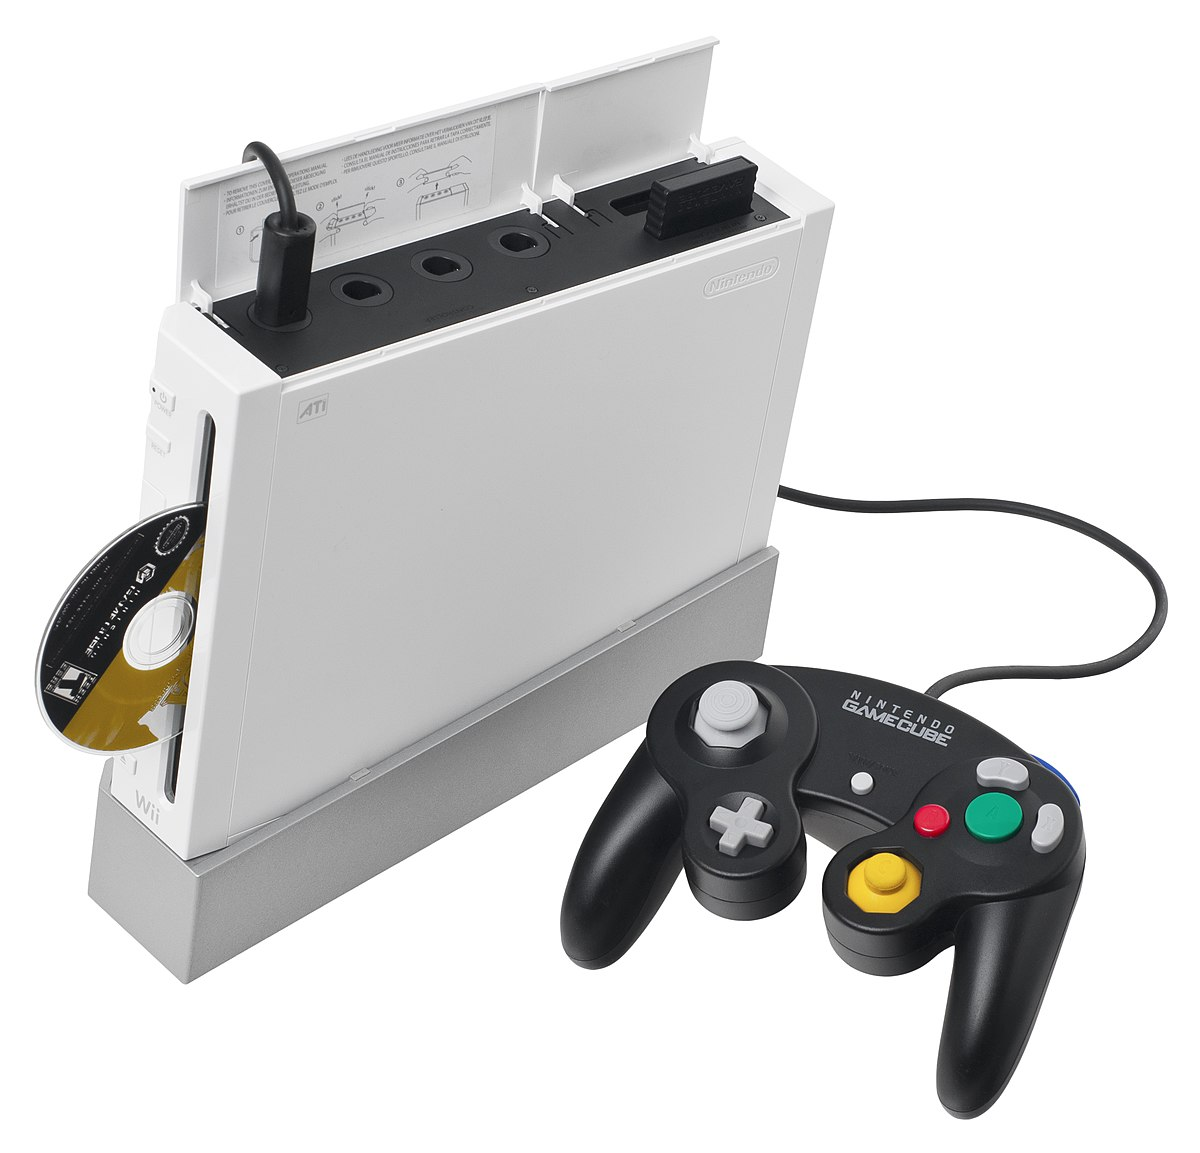 https://upload.wikimedia.org/wikipedia/commons/thumb/c/c8/Wii-gamecube-compatibility.jpg/1200px-Wii-gamecube-compatibility.jpg